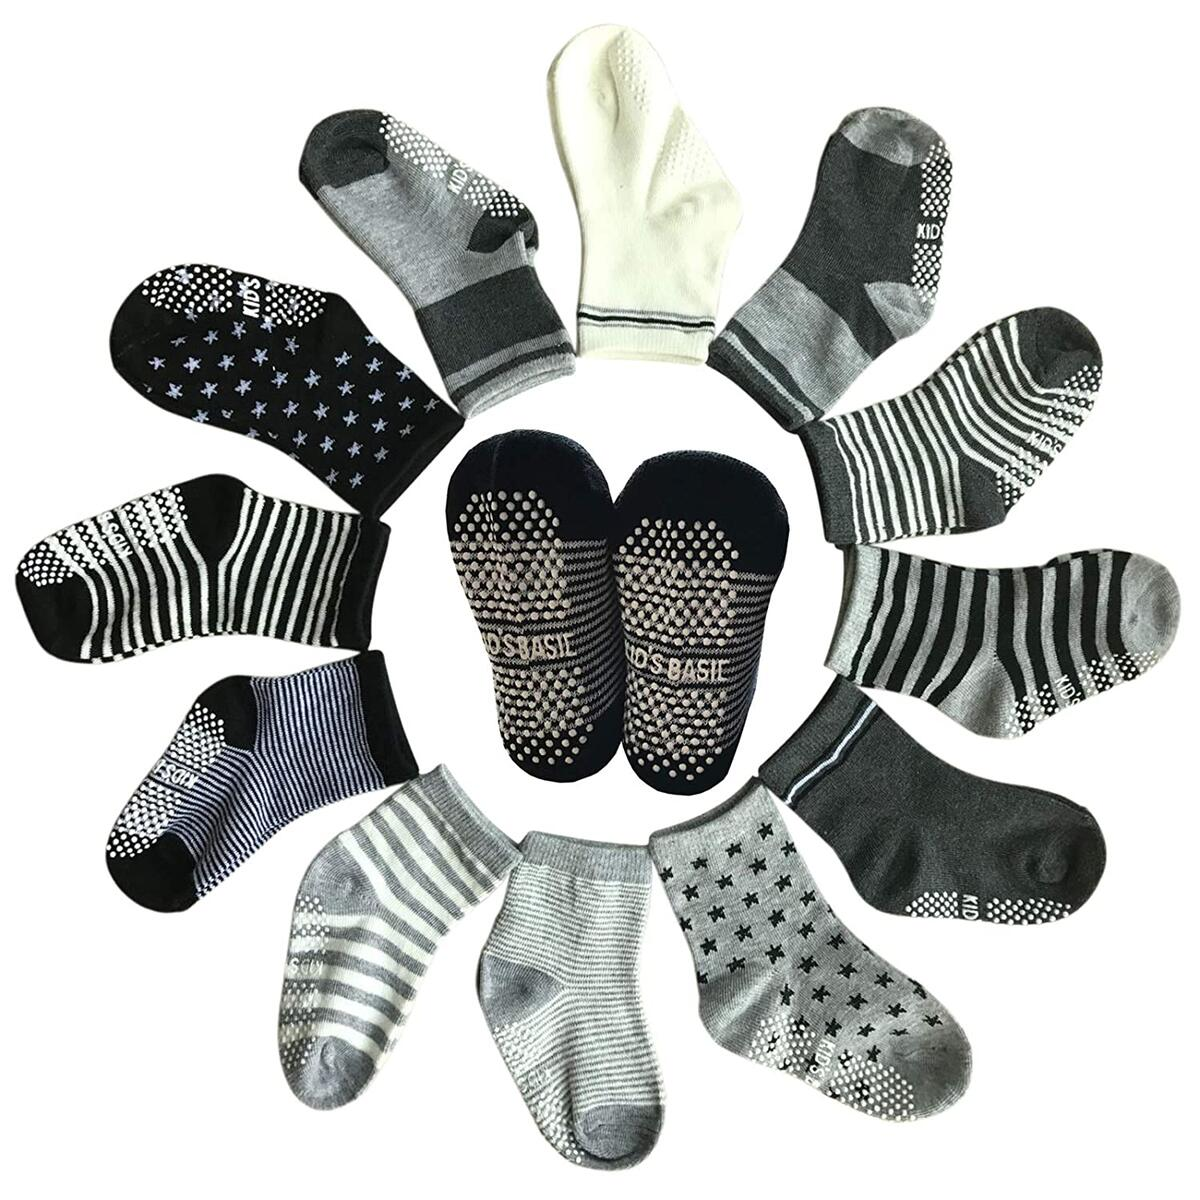 12 Pairs Non Skid Ankle Cotton Socks Baby Walker Boys Girls Toddler Anti Slip Stretch Knit Stripes Star Footsocks Sneakers Crew Socks With Grip For 16-36 Months Baby